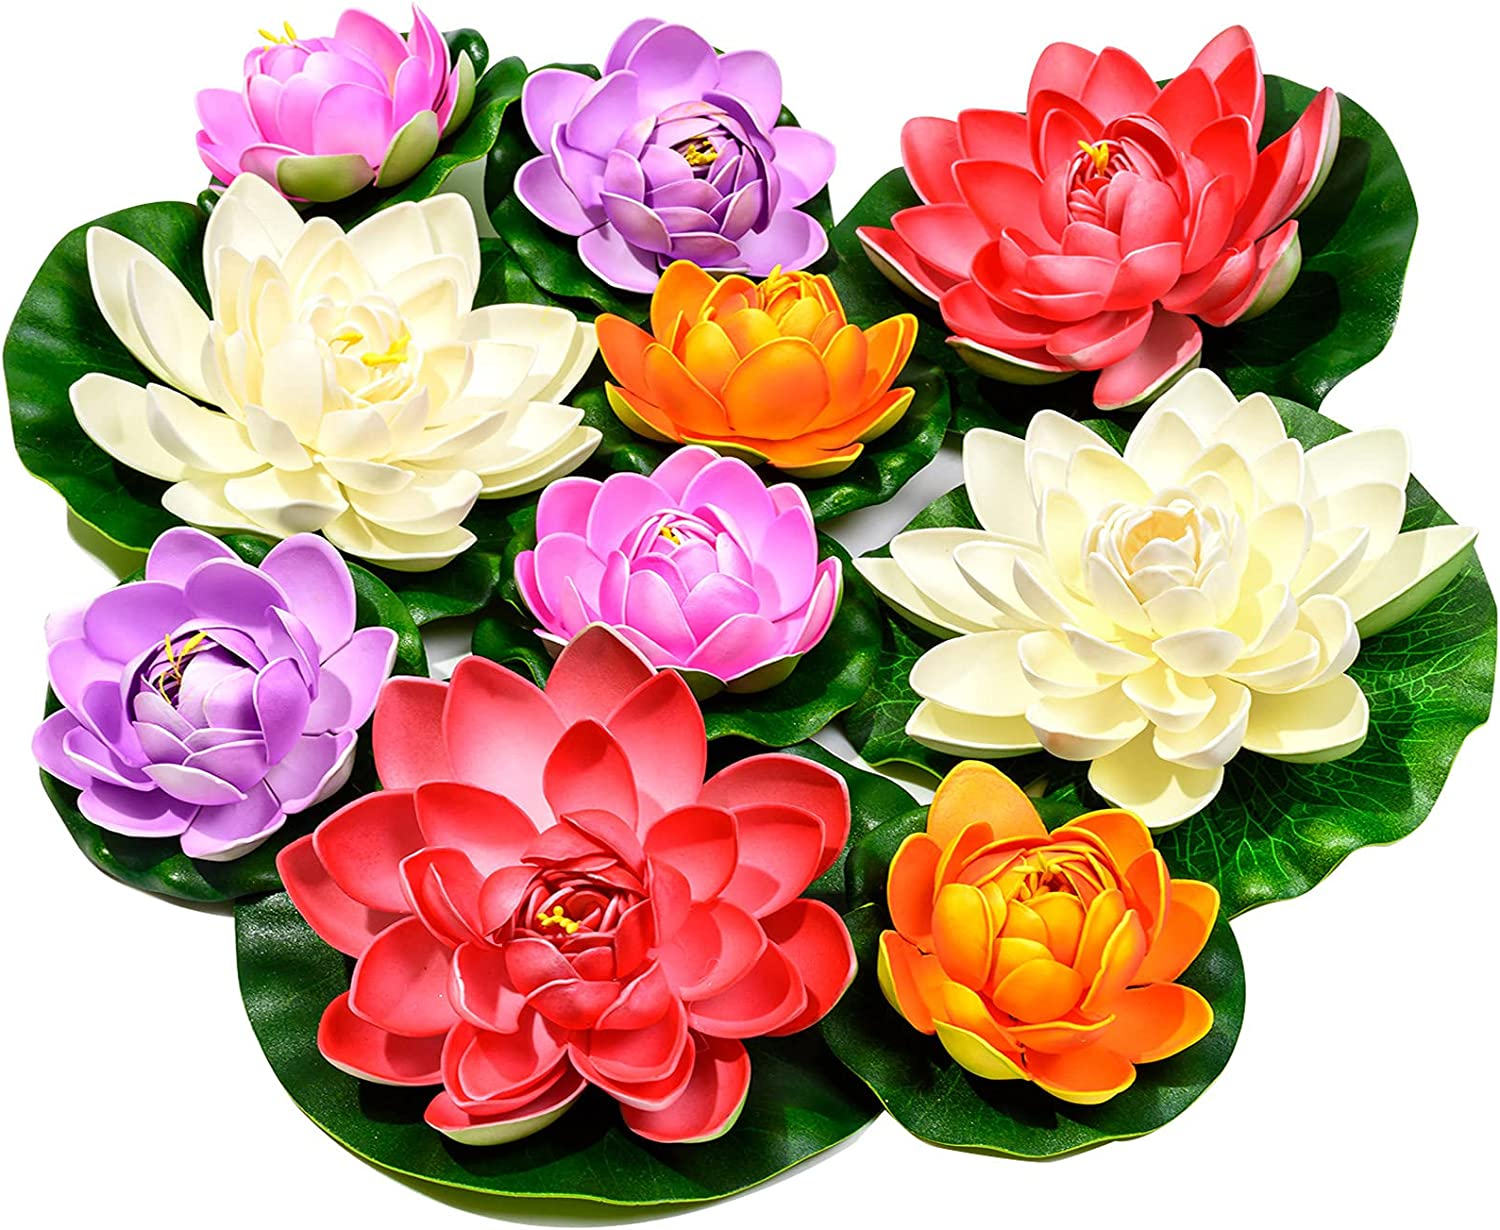 Artificial Floating Foam Lotus Flower with Water Lily Pad, Realistic Ornanment Perfect for Home Outdoor Patio Pond Aquarium Wedding Party Decorations, 10PCS